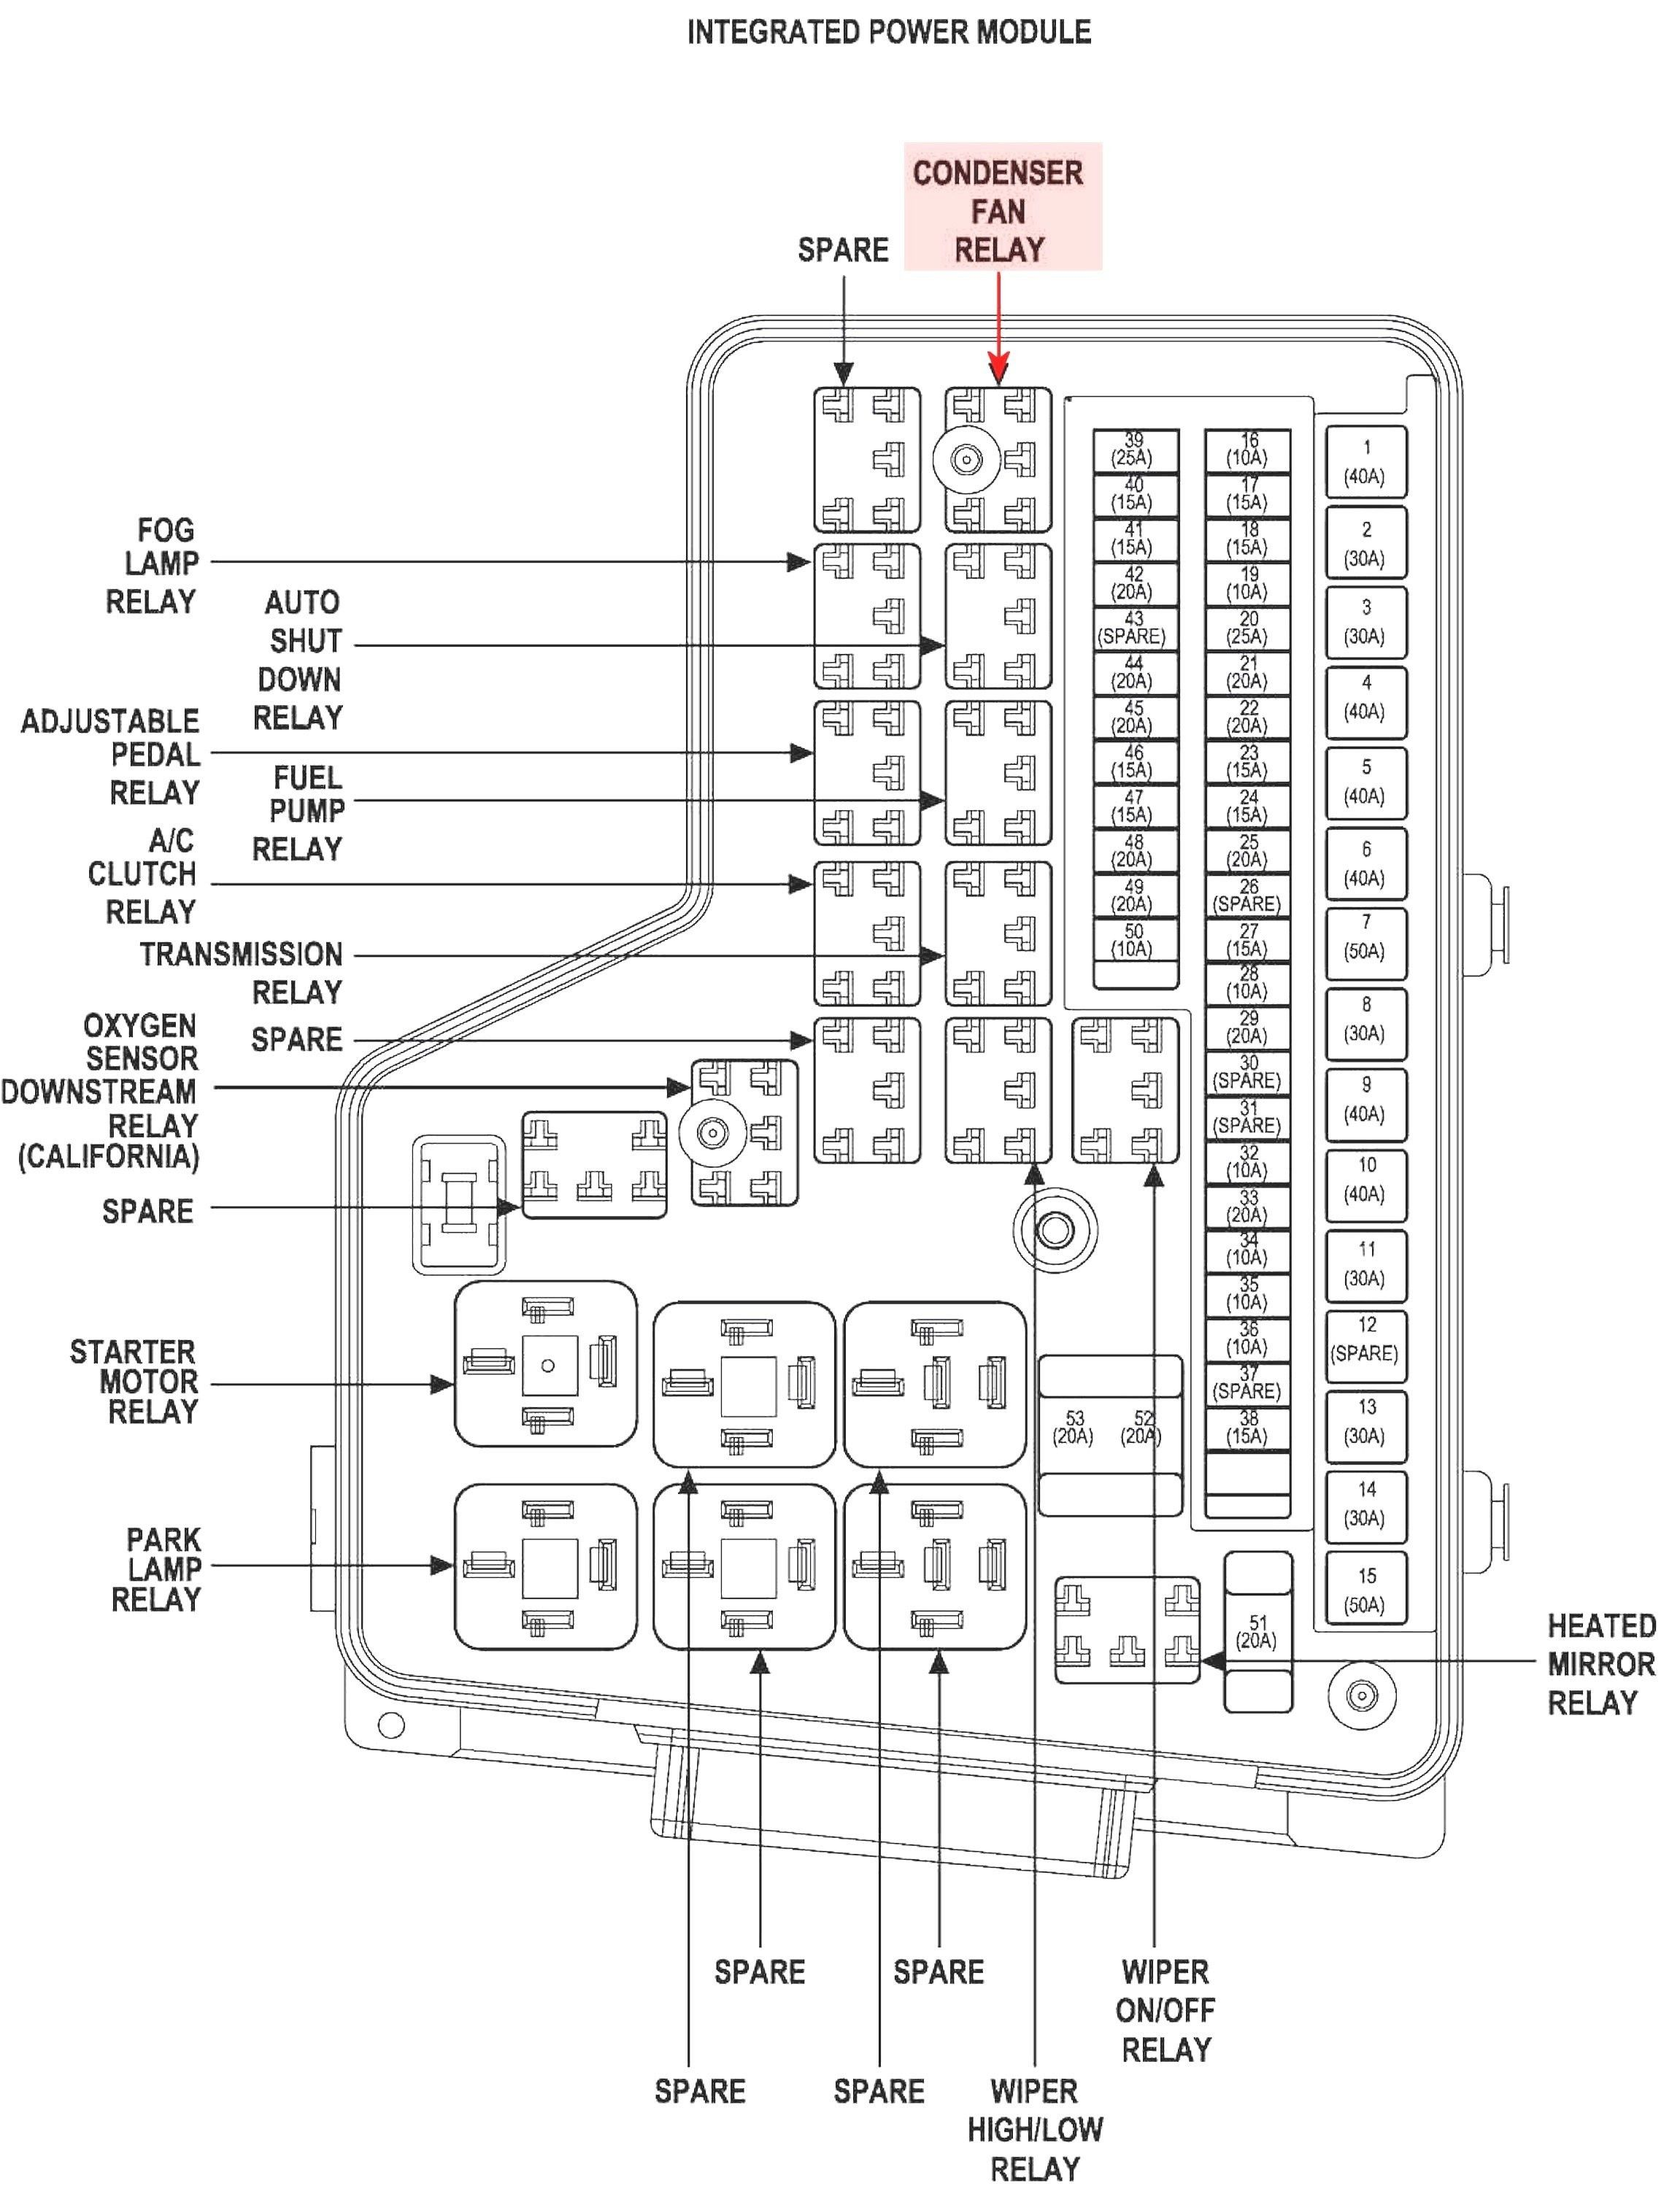 20+ 1999 dodge ram wiring diagram ideas in 2021